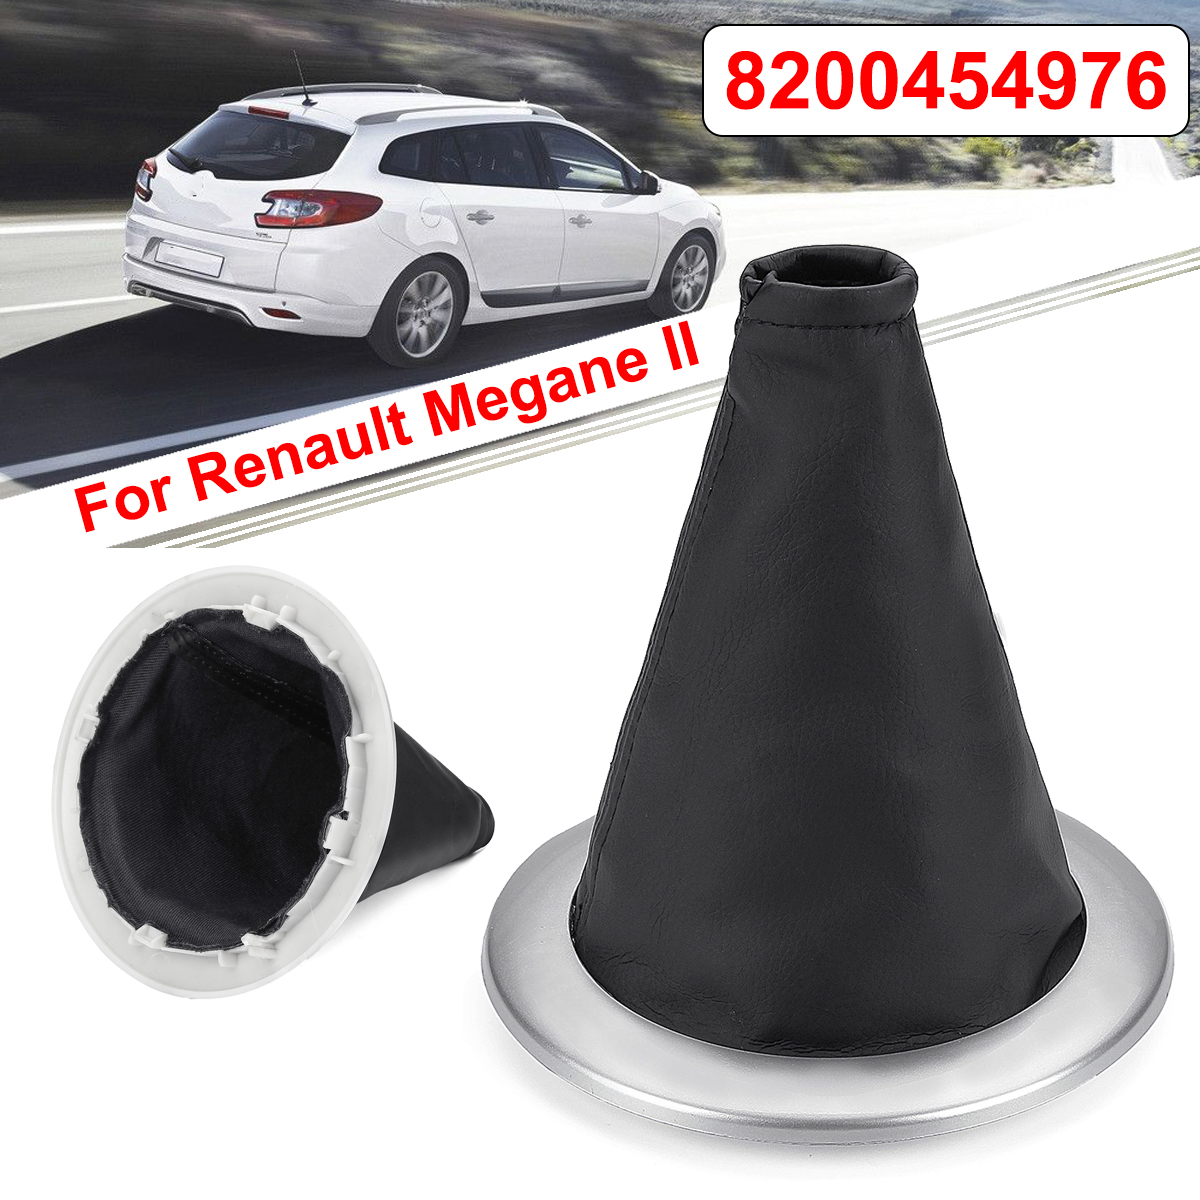 Sunny Car Gear Shift Collar Gaiter Boot Cover For Renault Megane Ii 2002-2009 /sport Tourer Ii 2003-2009